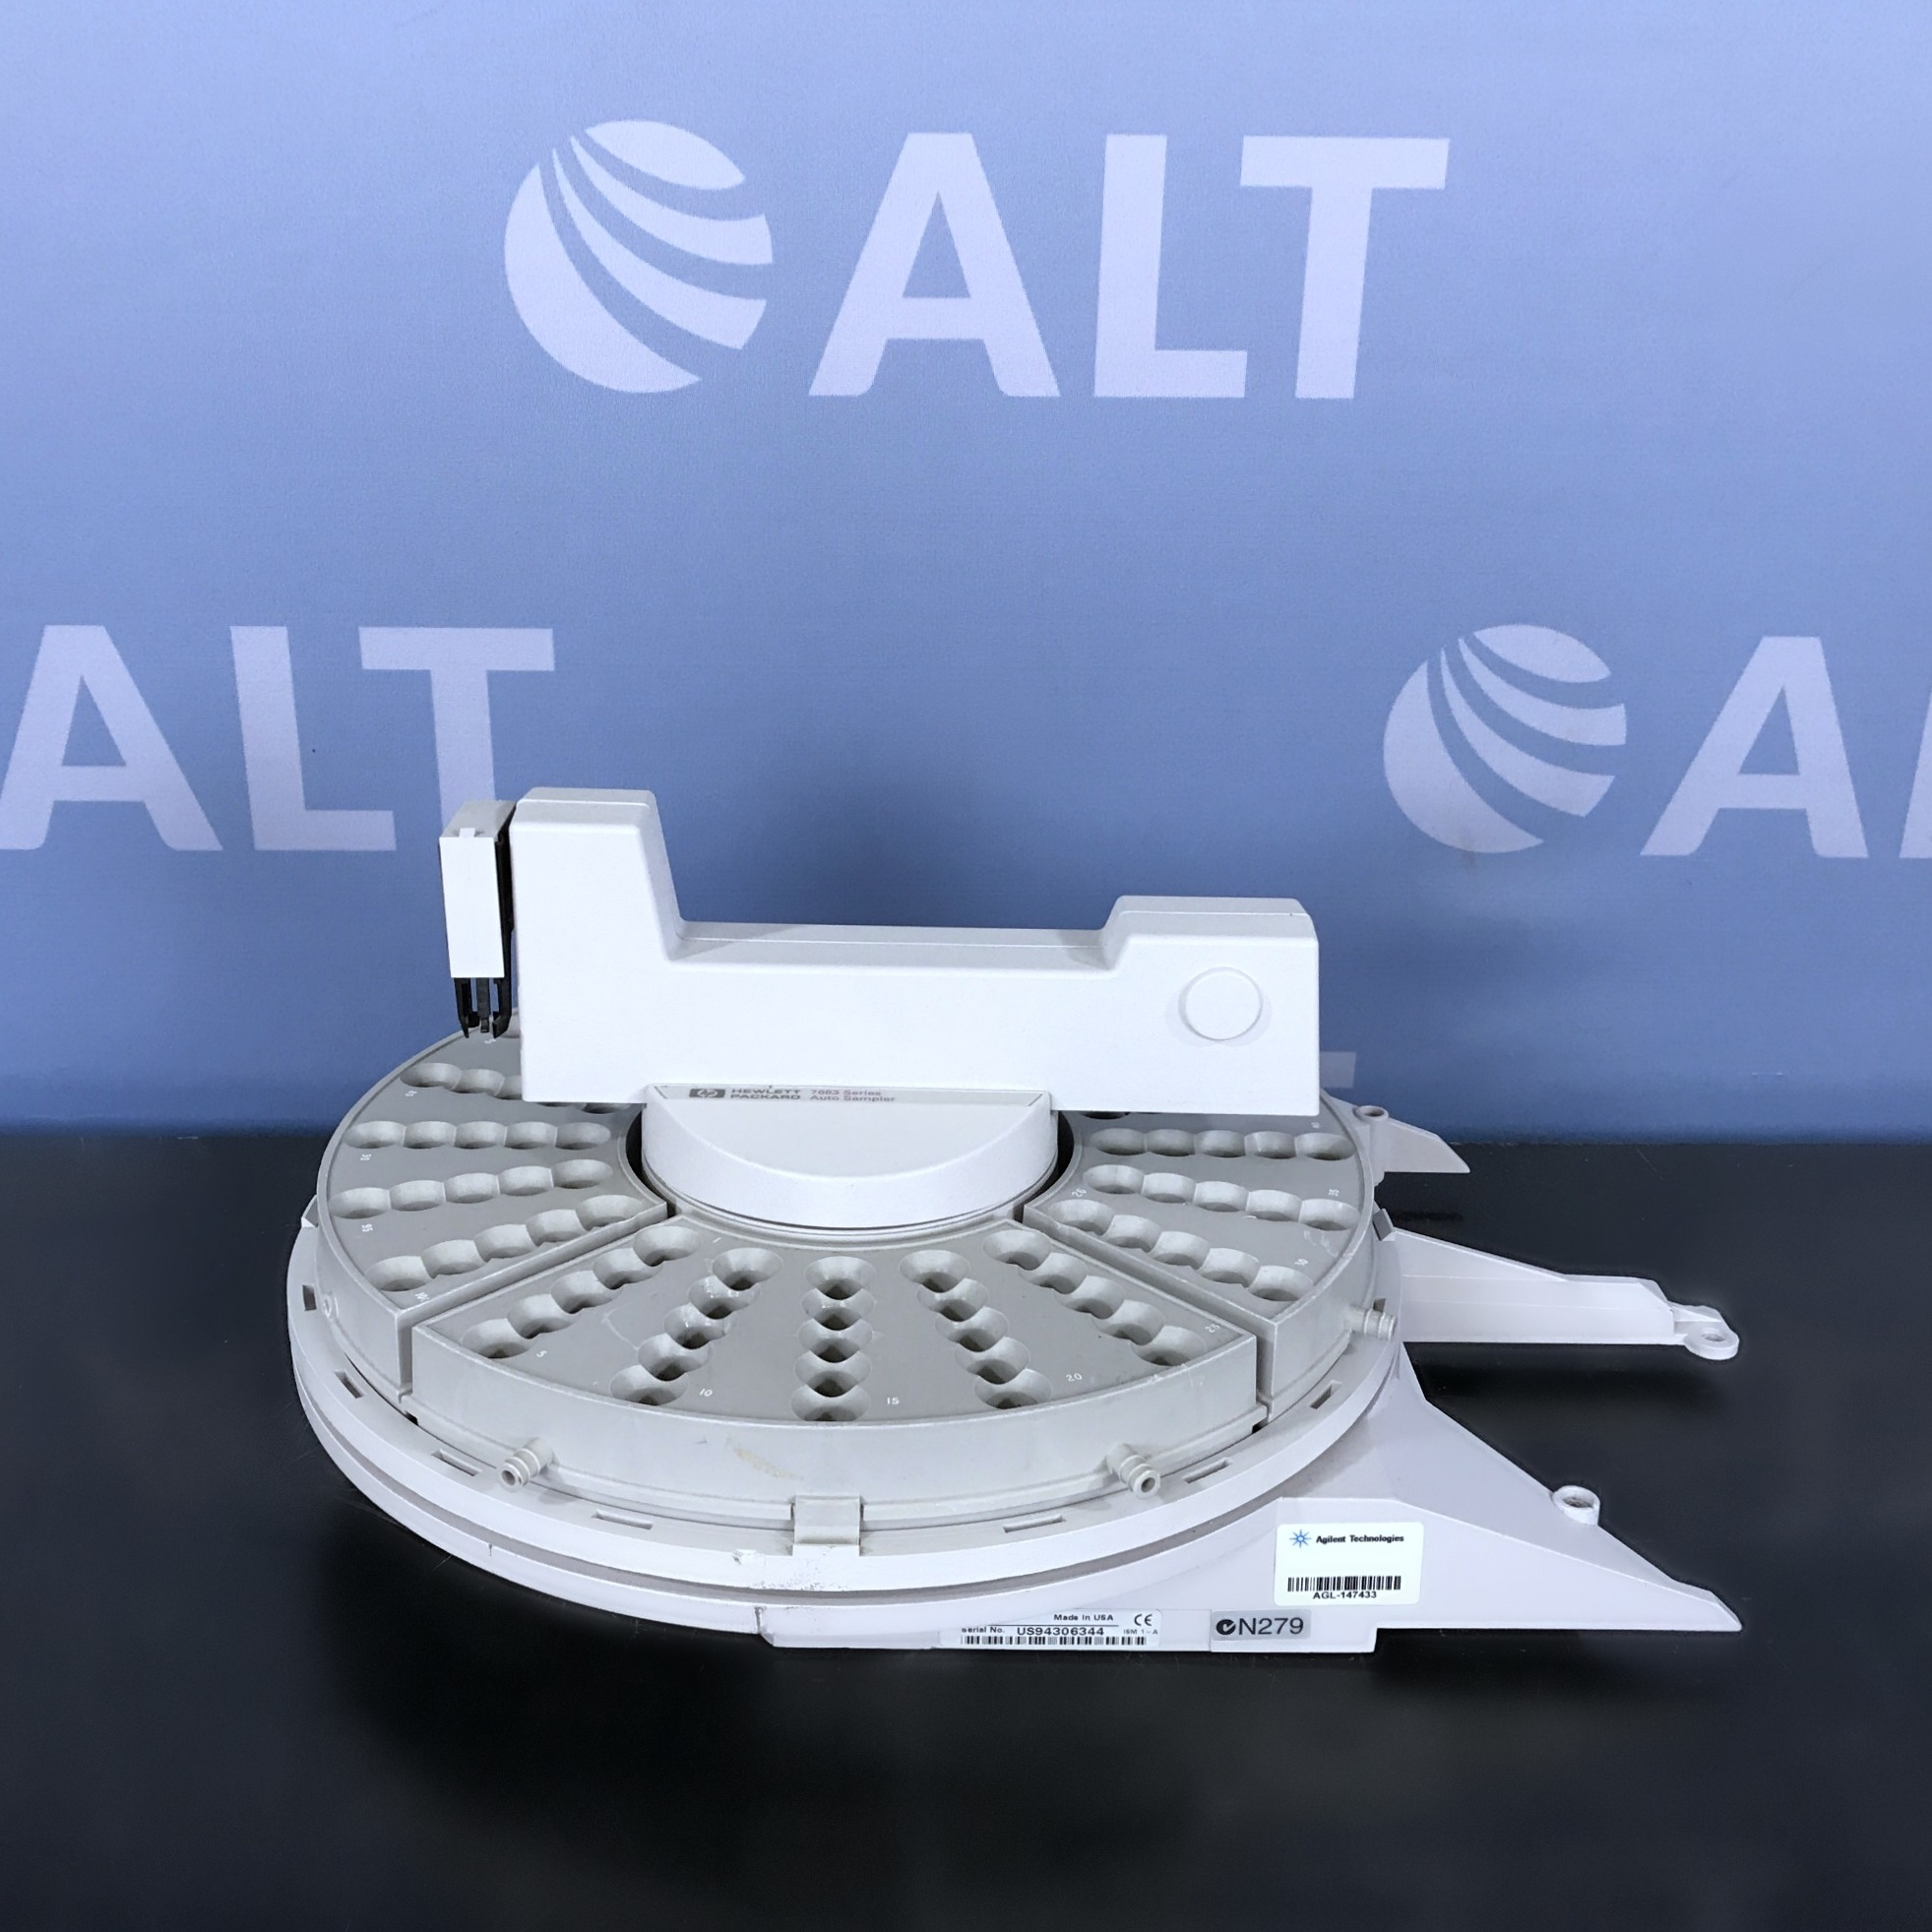 7683 Series ALS Automatic Liquid Sampler Tray (G2614A) Name